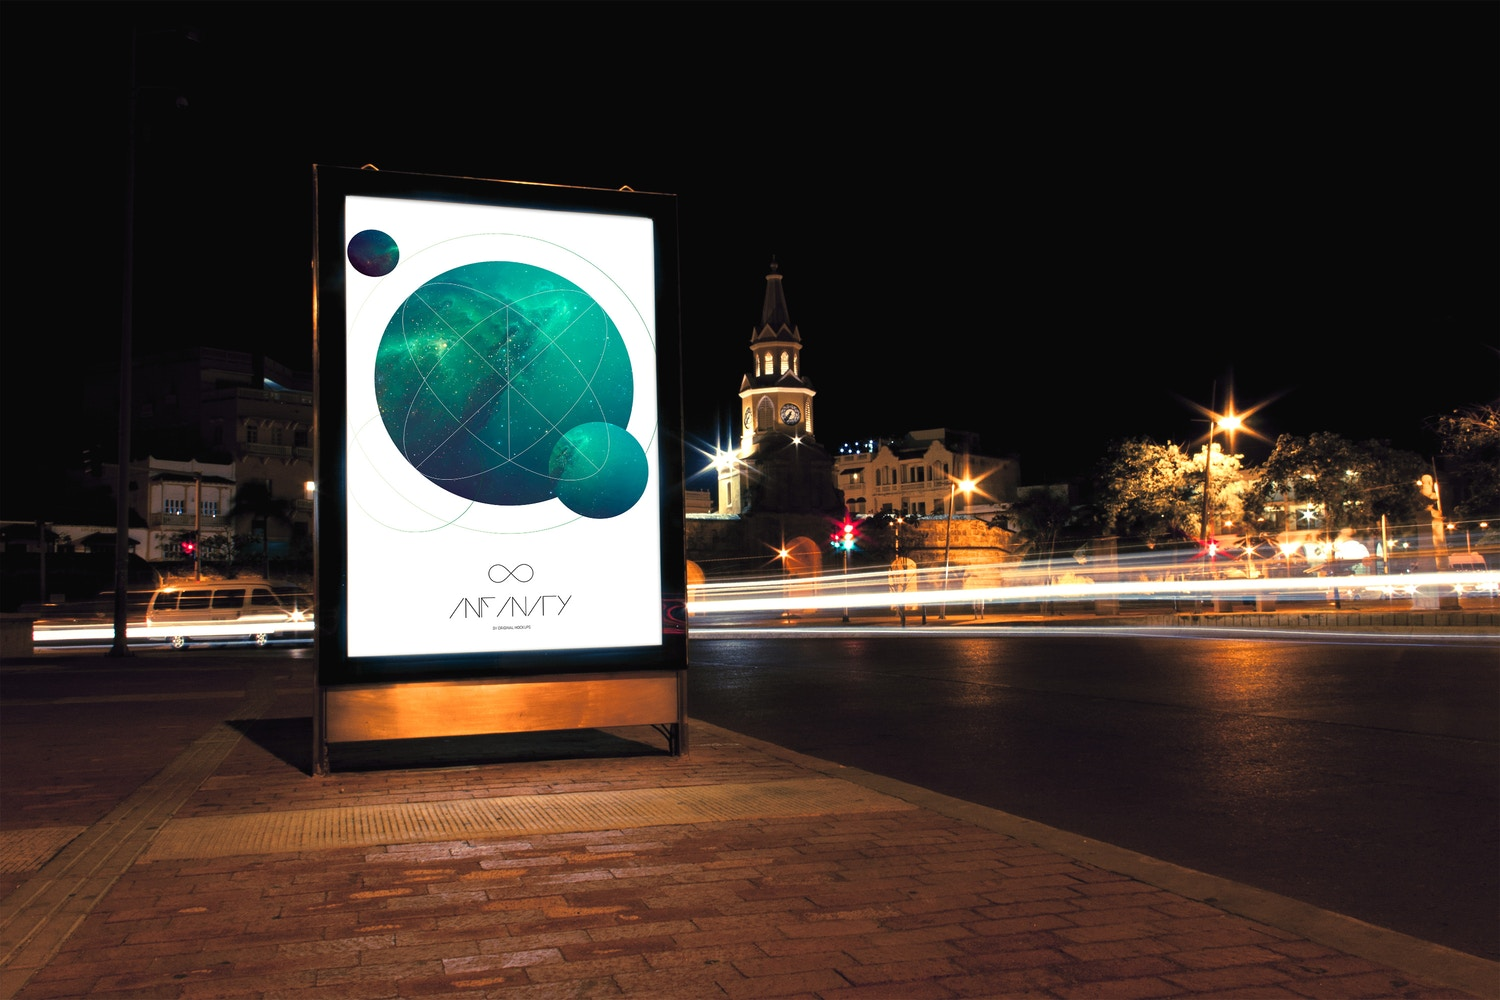 Mupi Billboard Mockup 2 by Original Mockups on Original Mockups